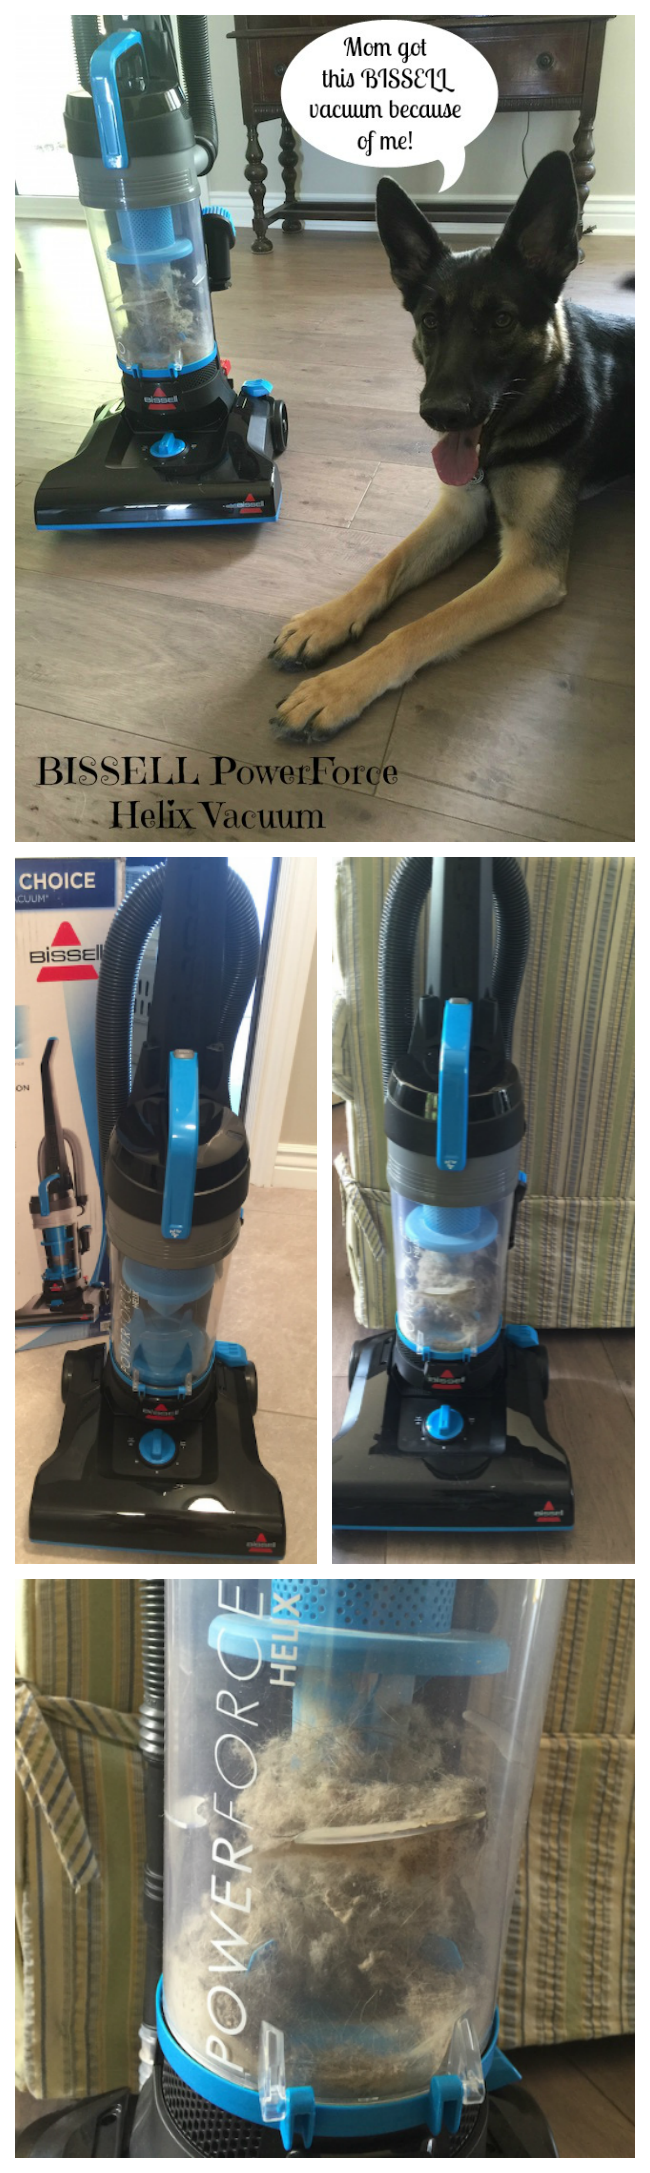 The BISSELL PowerForce Helix vacuum is a great value! It cleans up everyday messes without the high price tag so you're not paying for things you don't use.